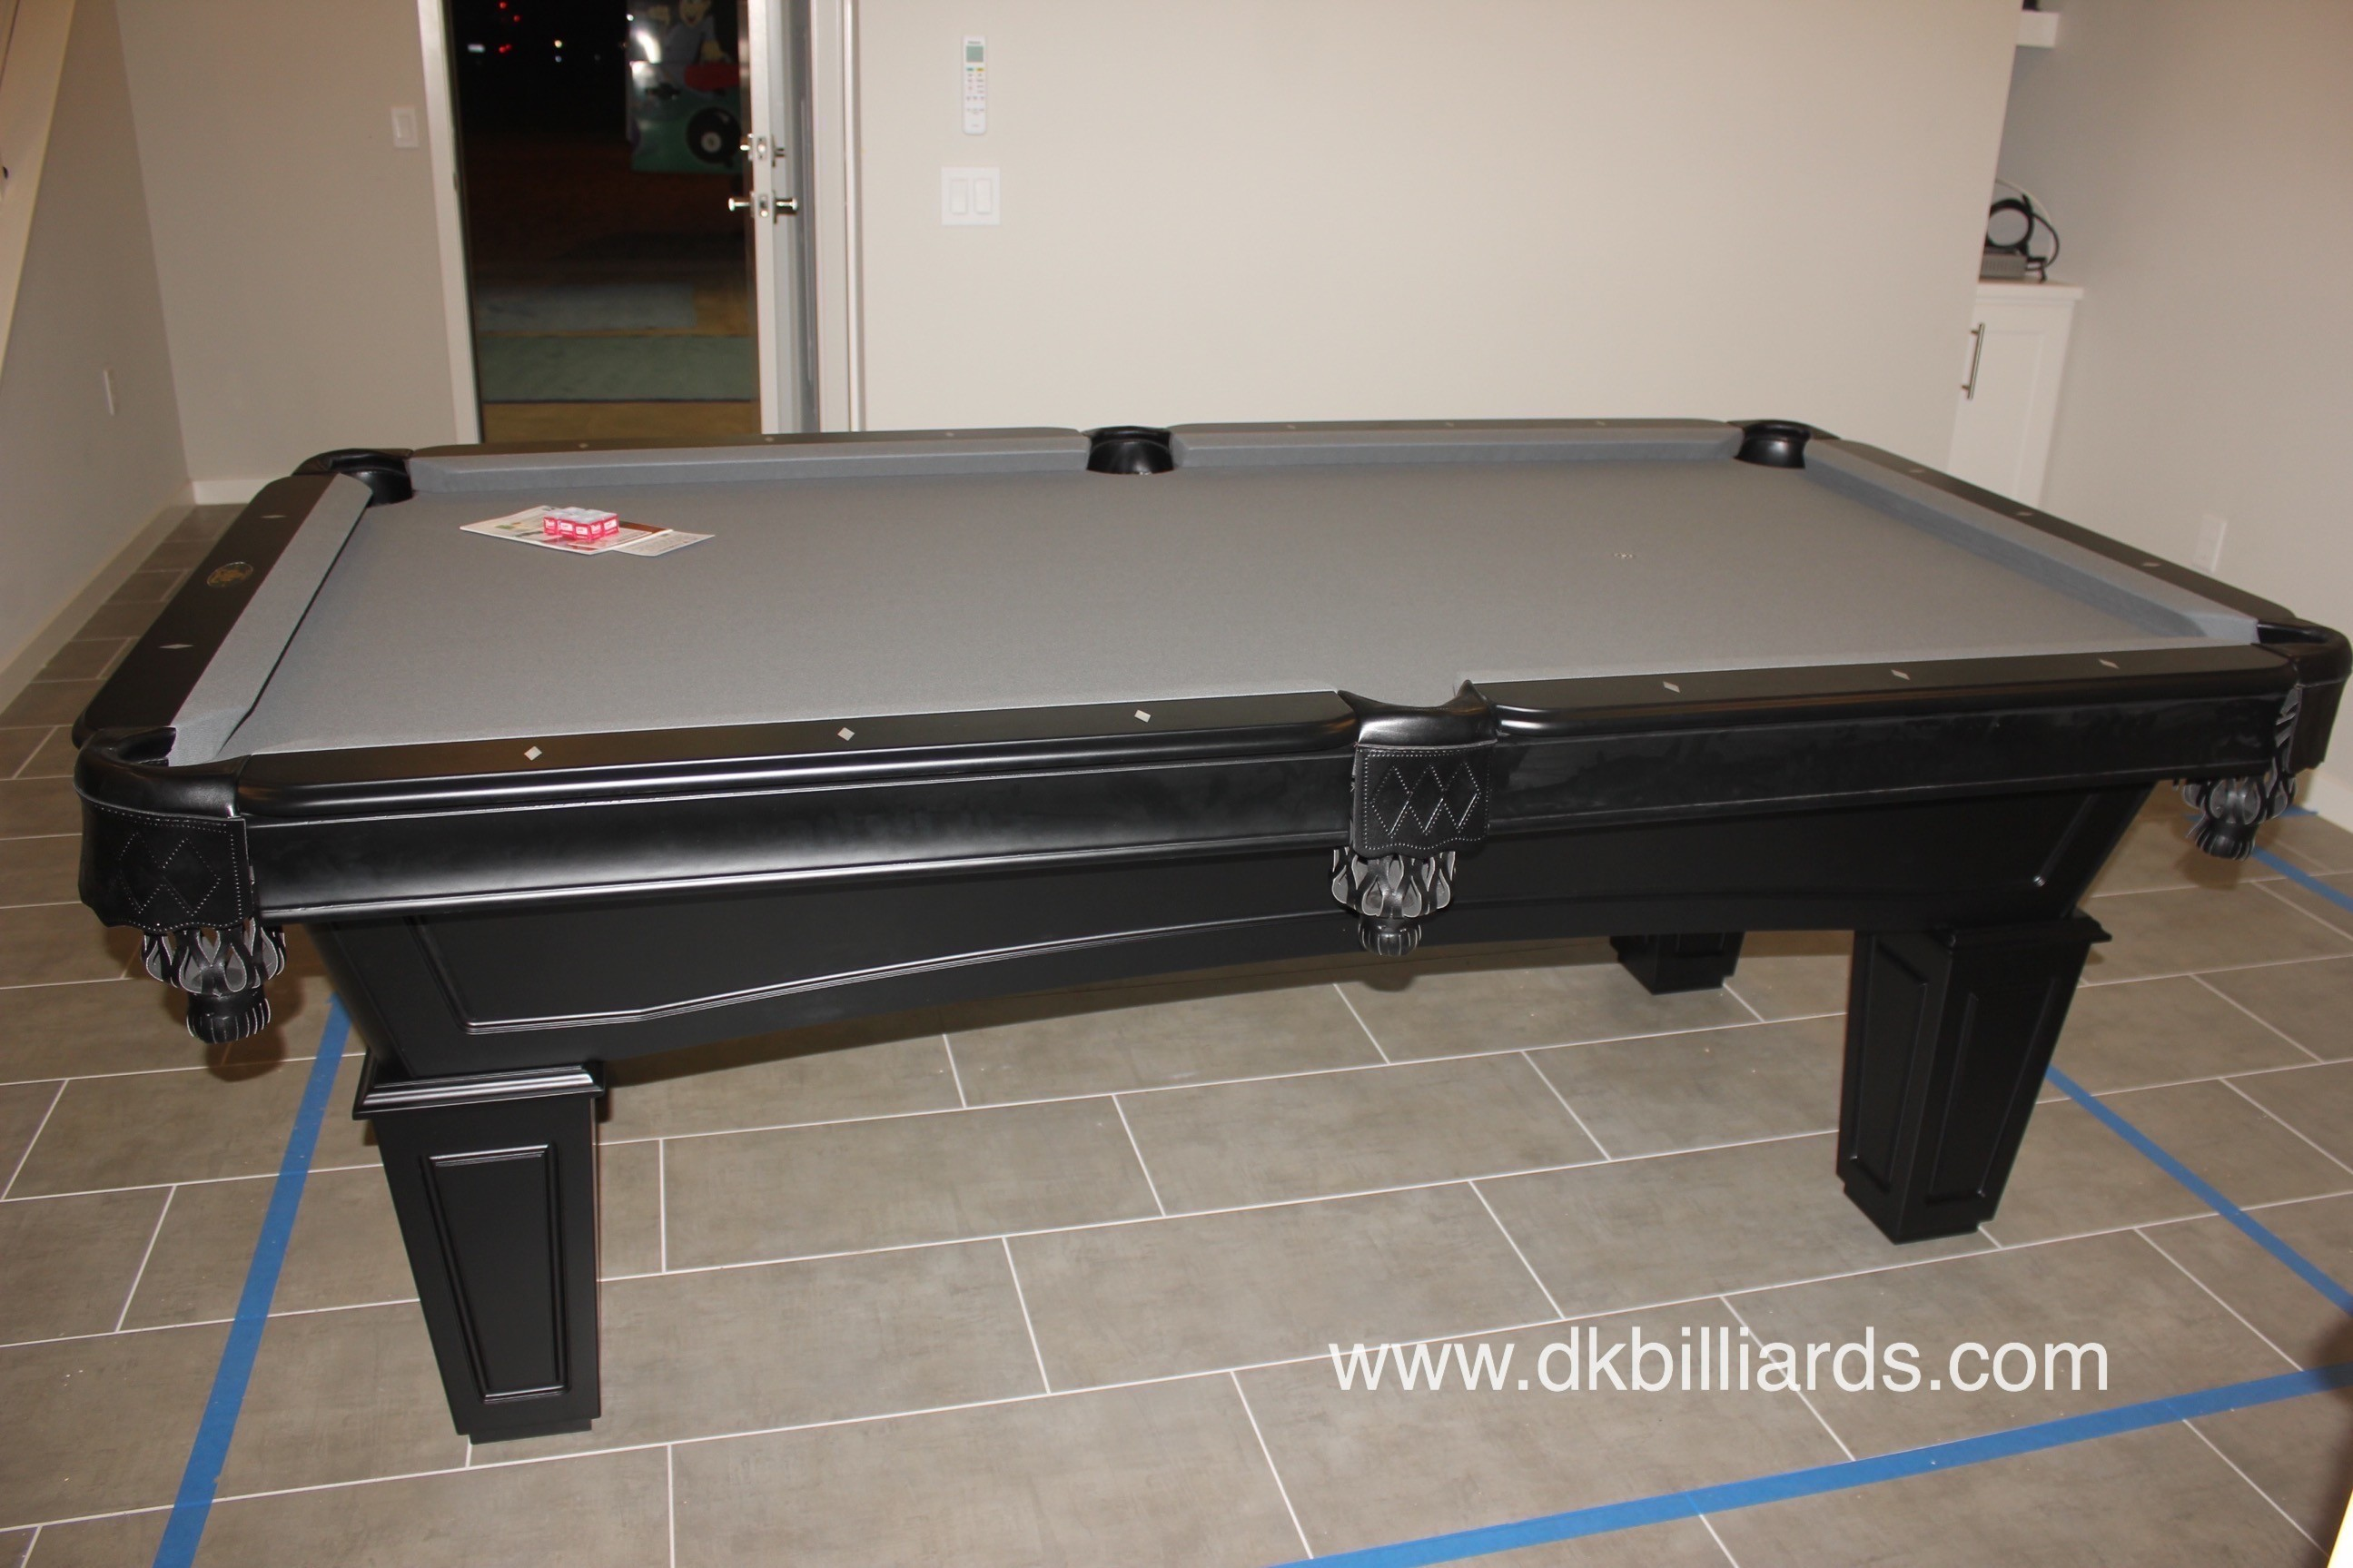 The Seven Foot Nash Pool Table Was A Perfect Fit For Our Costa Mesa,  California Customers. They Knew Their Space Could Accommodate Only A Bar  Sized Table, ...